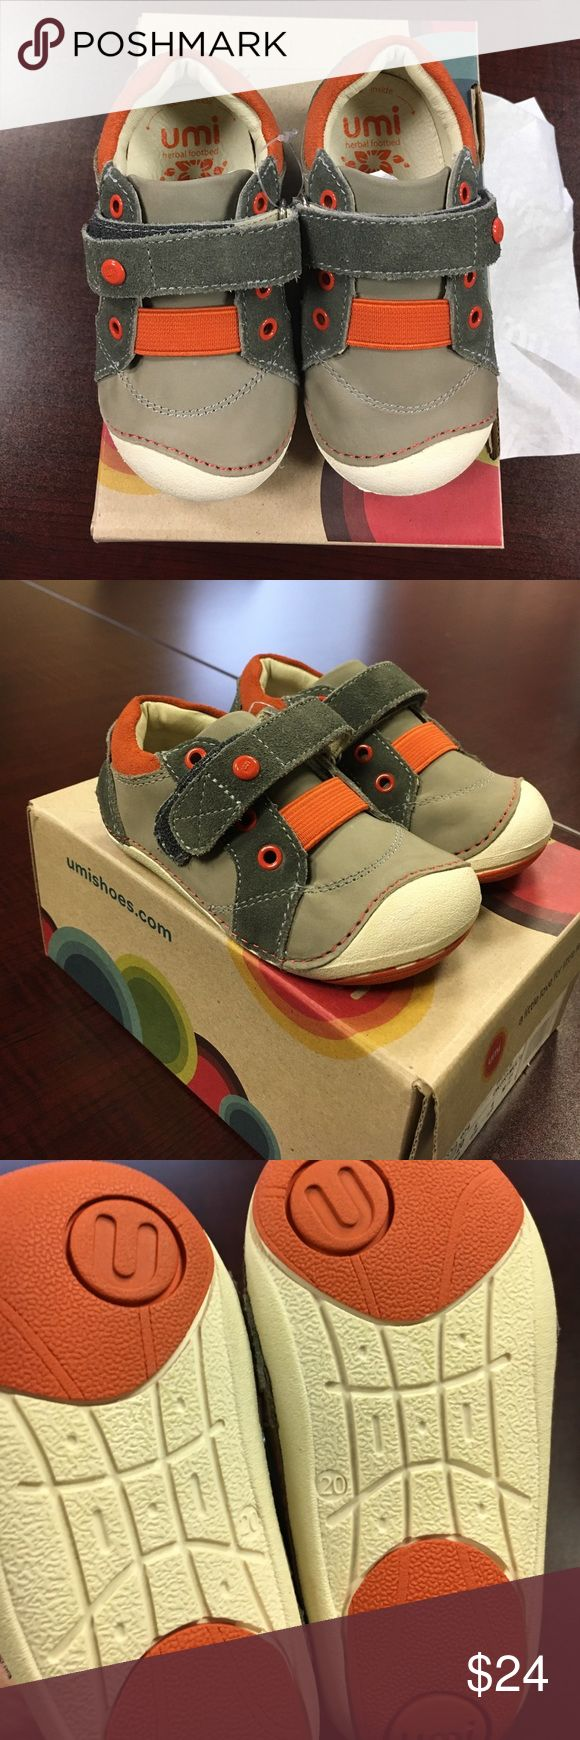 Umi baby boys Weelie gray and orange shoes Umi baby boys Weelie gray and orange shoes. These are great shoes and come brand-new in the box Umi Shoes Sneakers